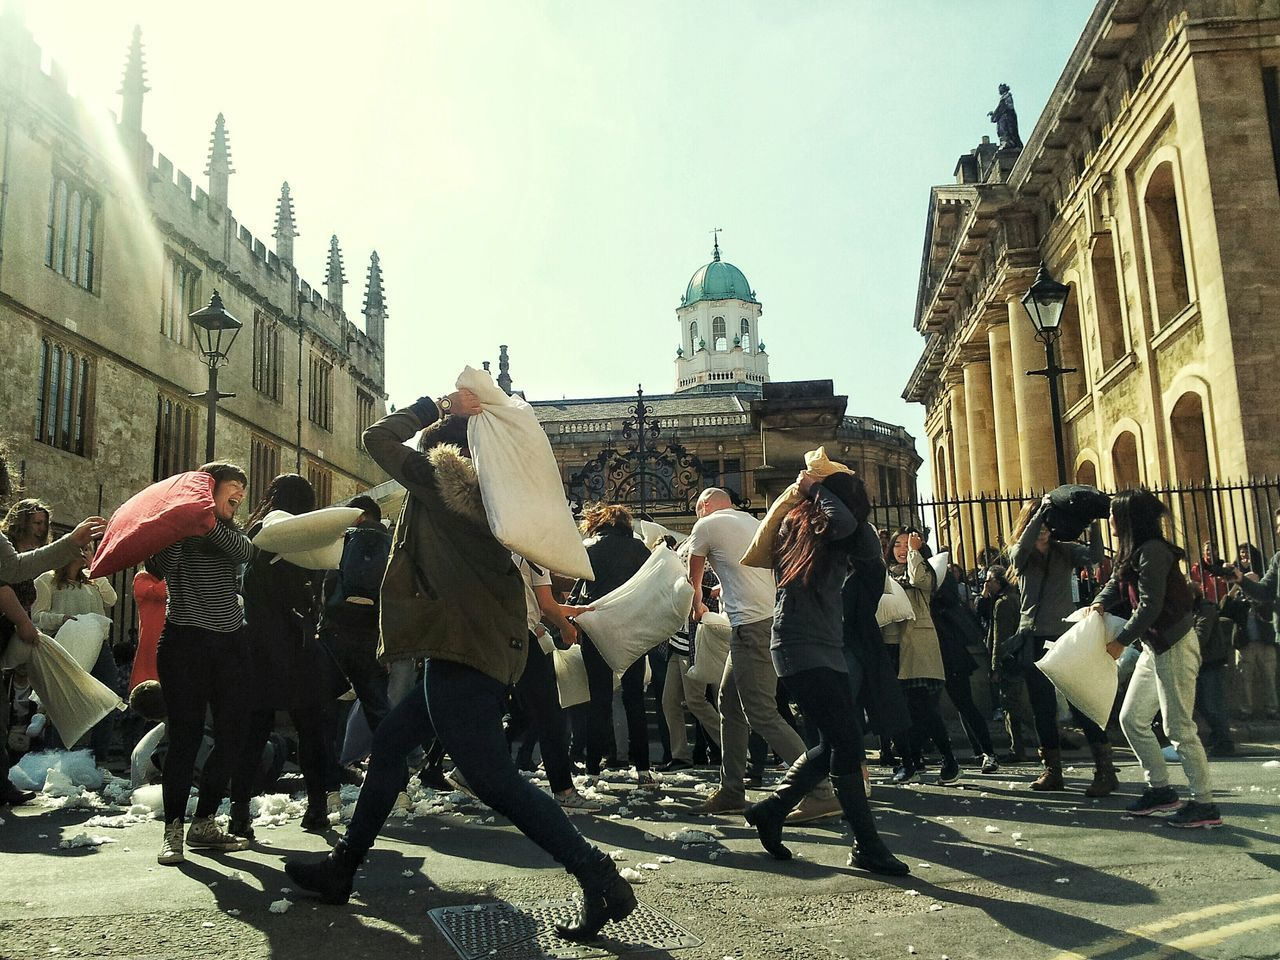 Pillow fight day in oxford. Oxford Pillow Fight Pillowfight Pillowfightday Bodleian Library Fun Funtimes Streetphotography Oxford University